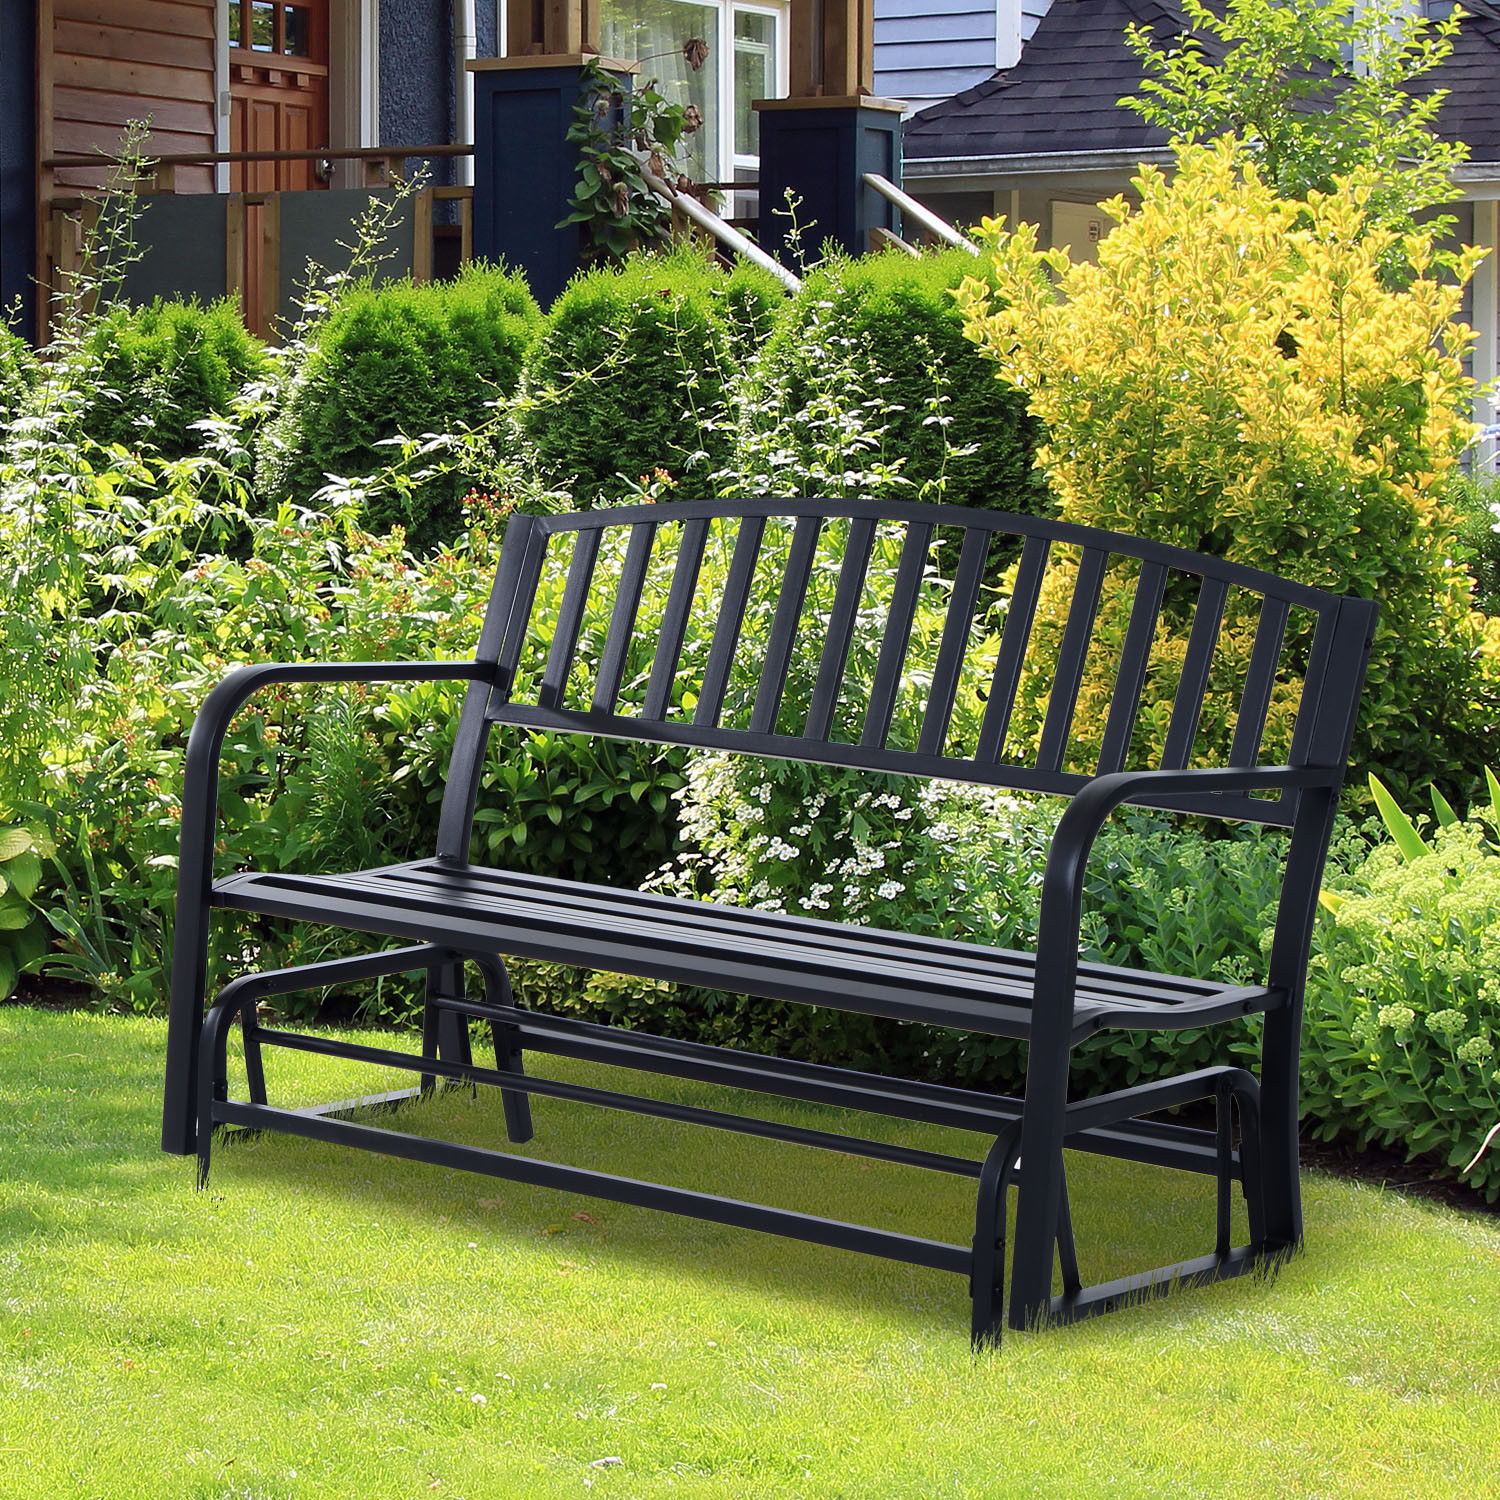 Details About Patio Garden Glider 2 Person Outdoor Porch Bench Rocking  Chair Yard Furniture For 2 Person Antique Black Iron Outdoor Gliders (Image 14 of 25)